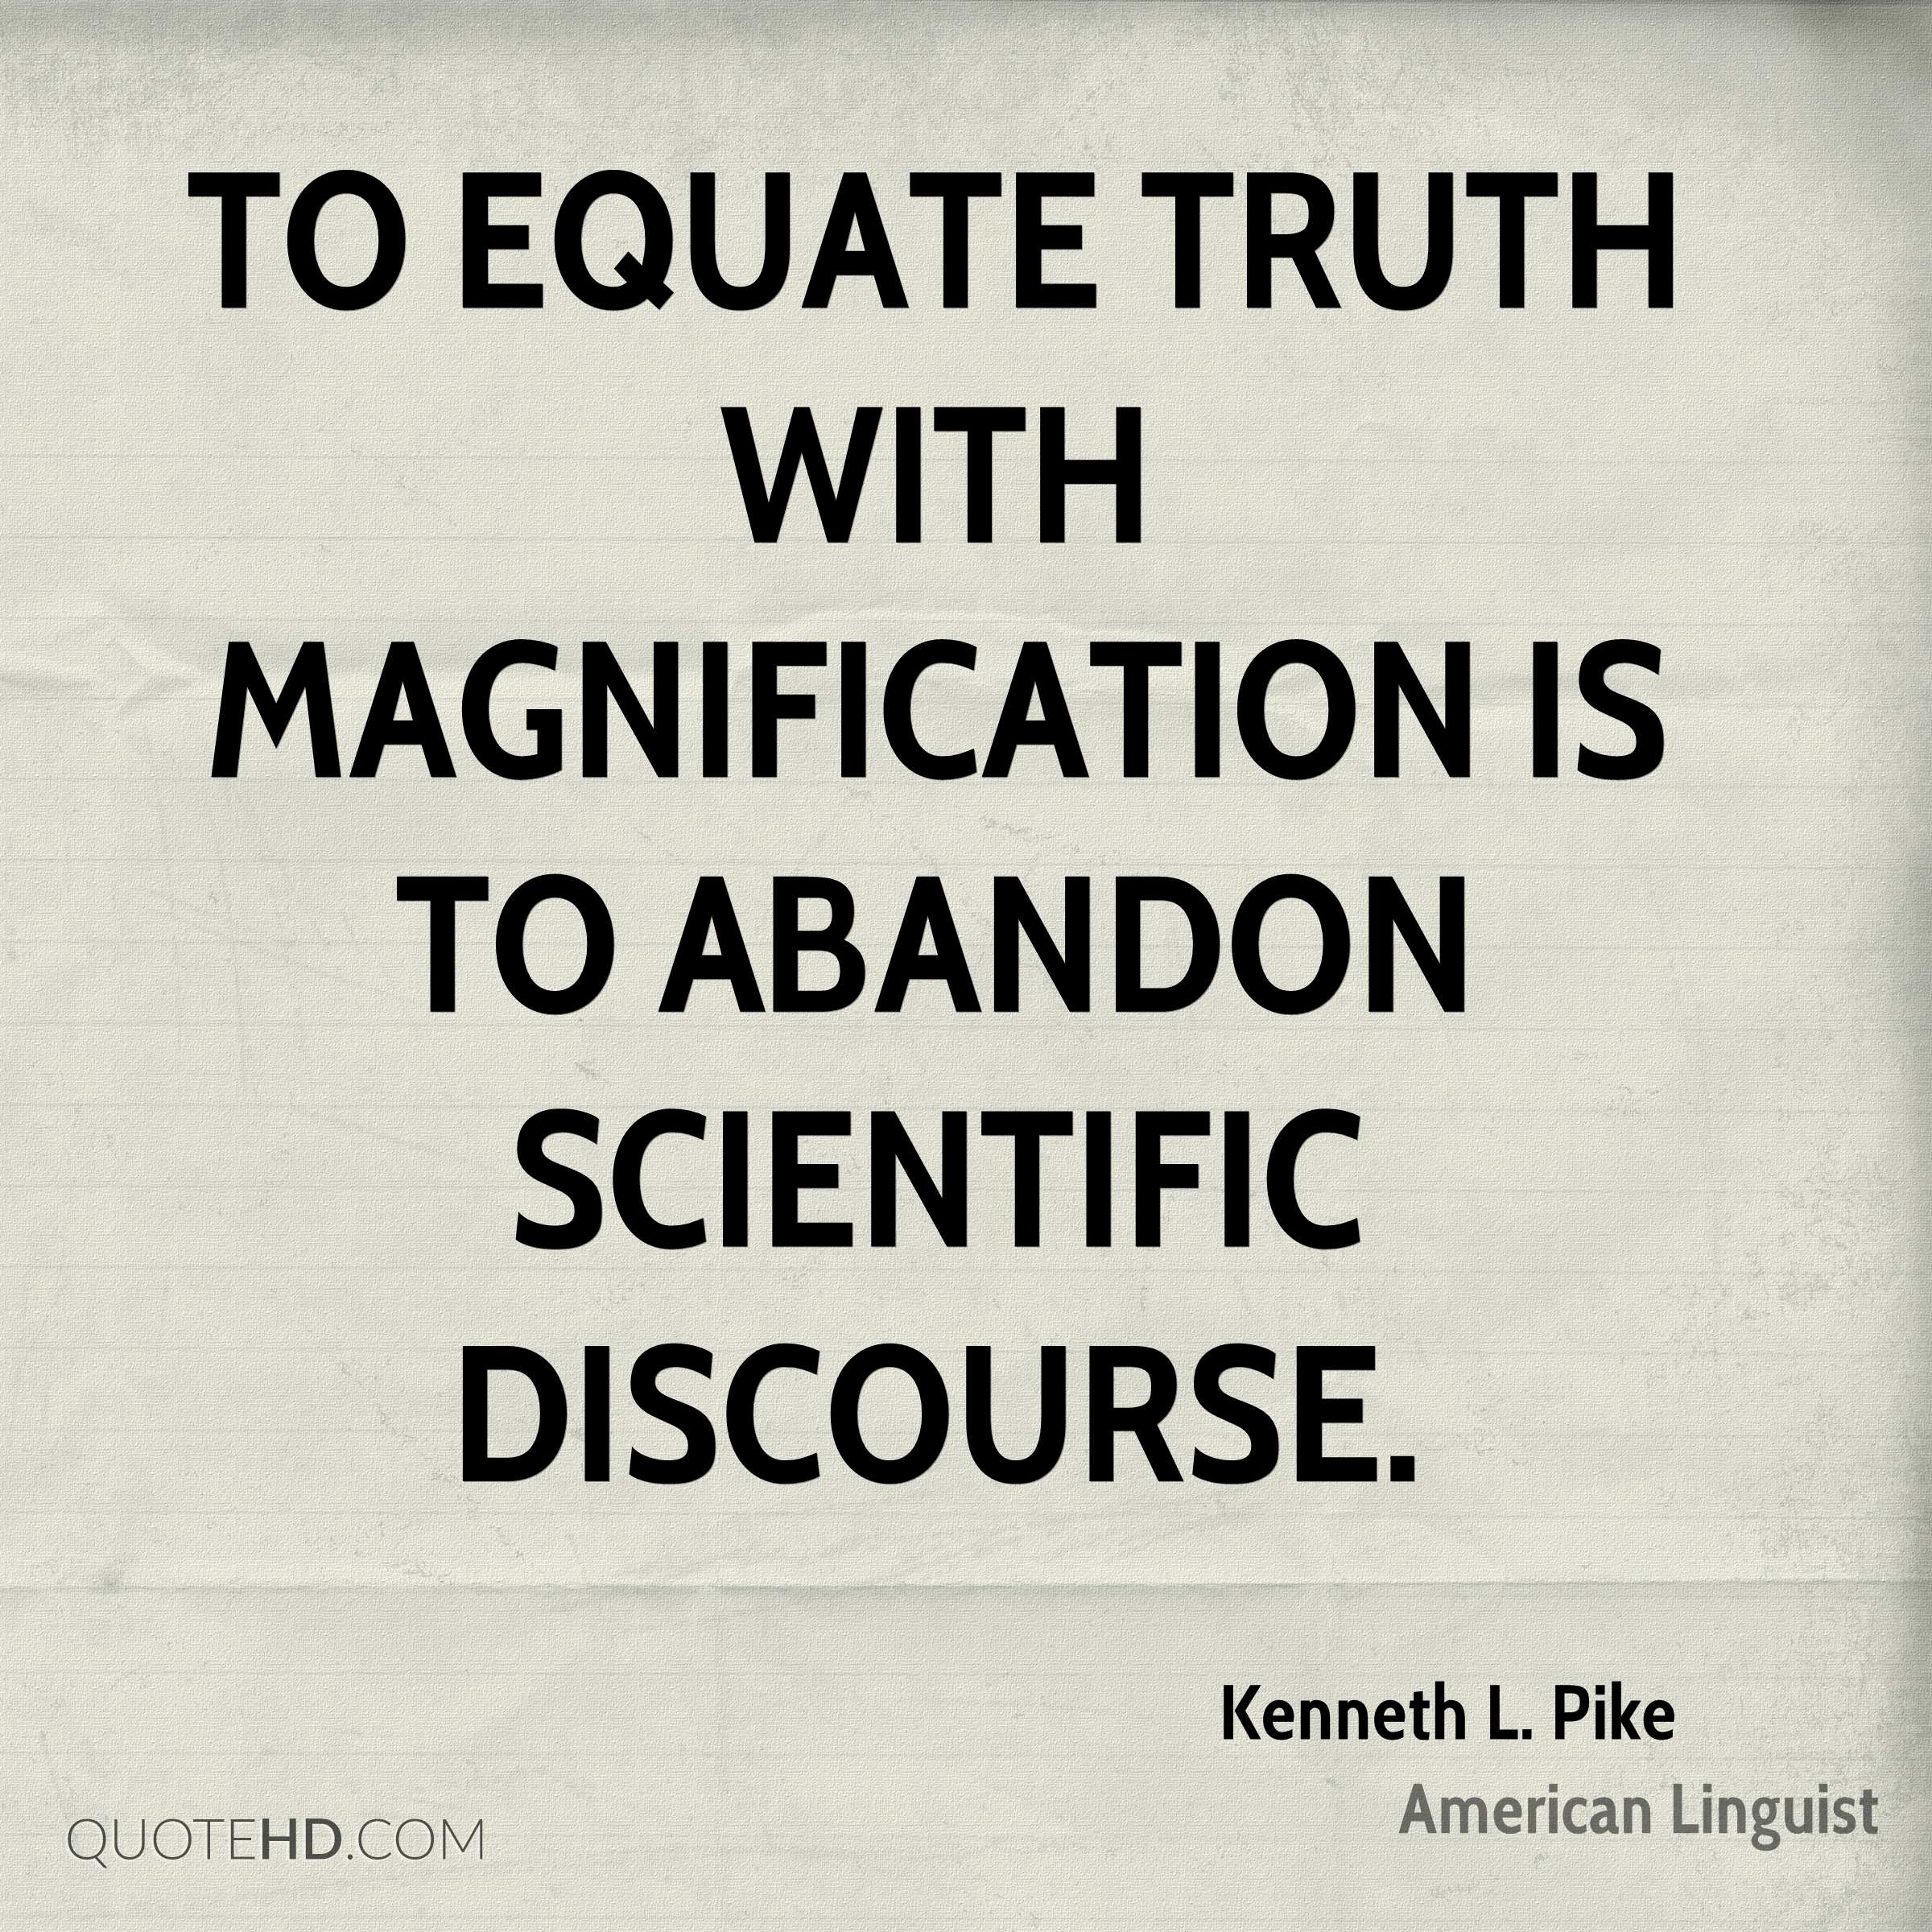 To equate truth with magnification is to abandon scientific discourse.